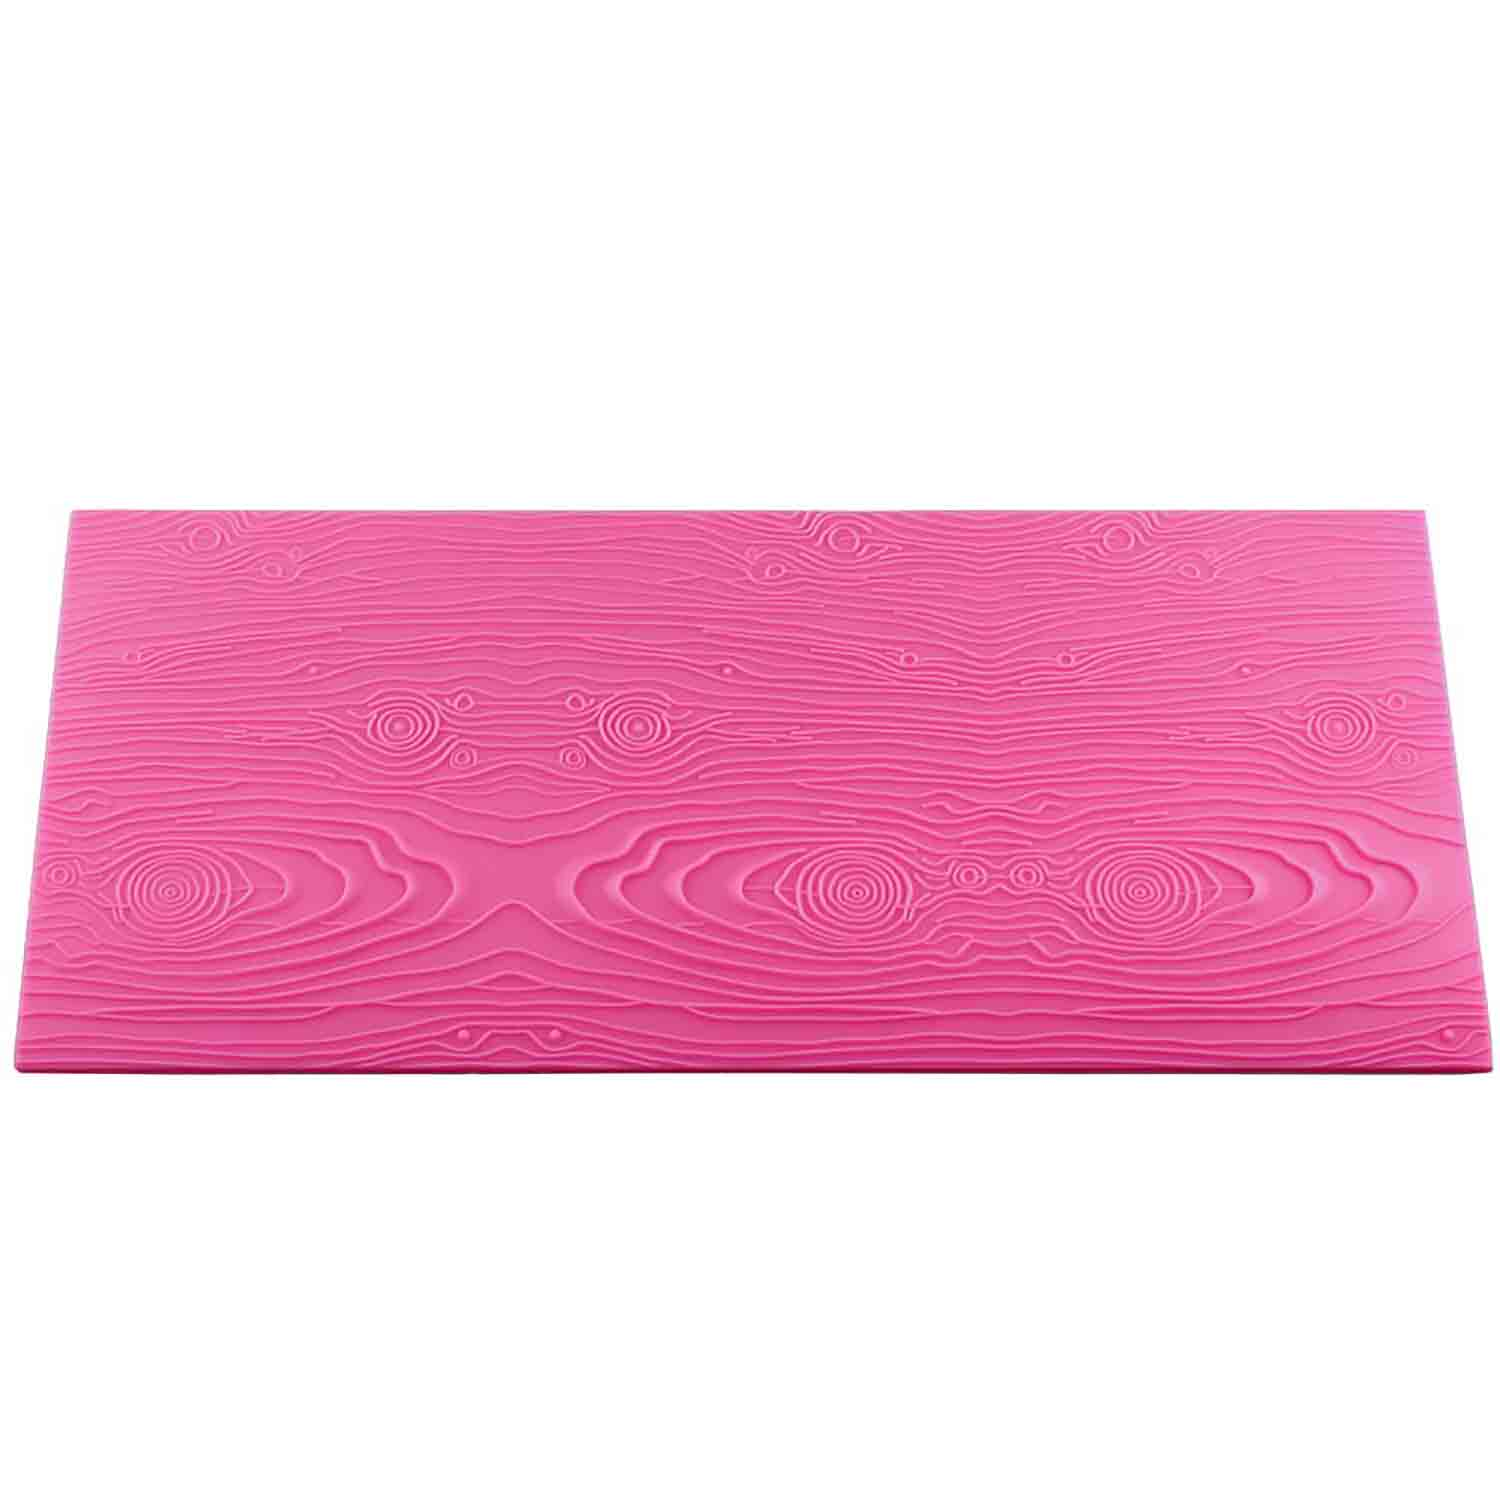 Wood Grain Silicone Texture Mat Ny M010 Country